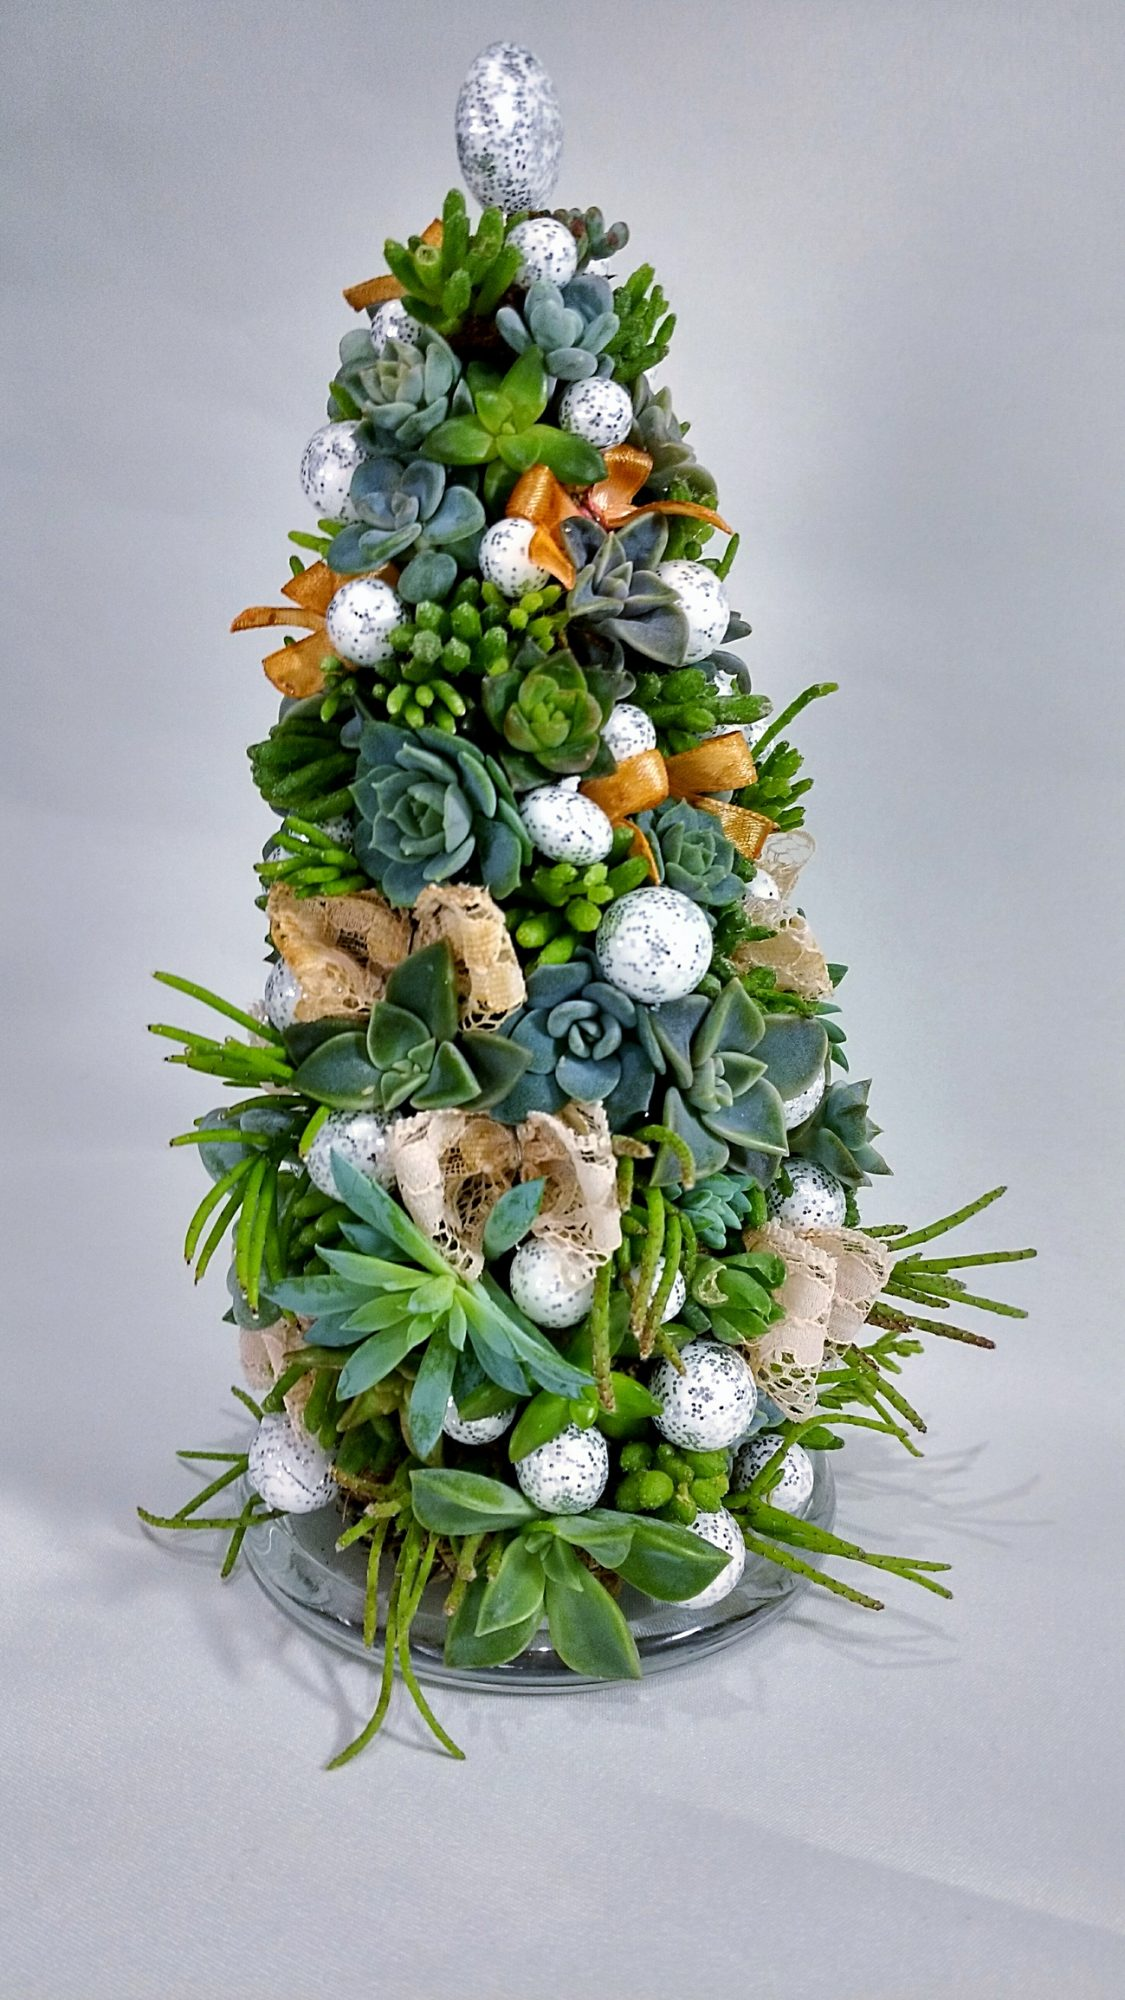 Find a cone-shaped planting form, or use faux succulents and hot glue (plus a few choice ornaments) to create this unique tree.